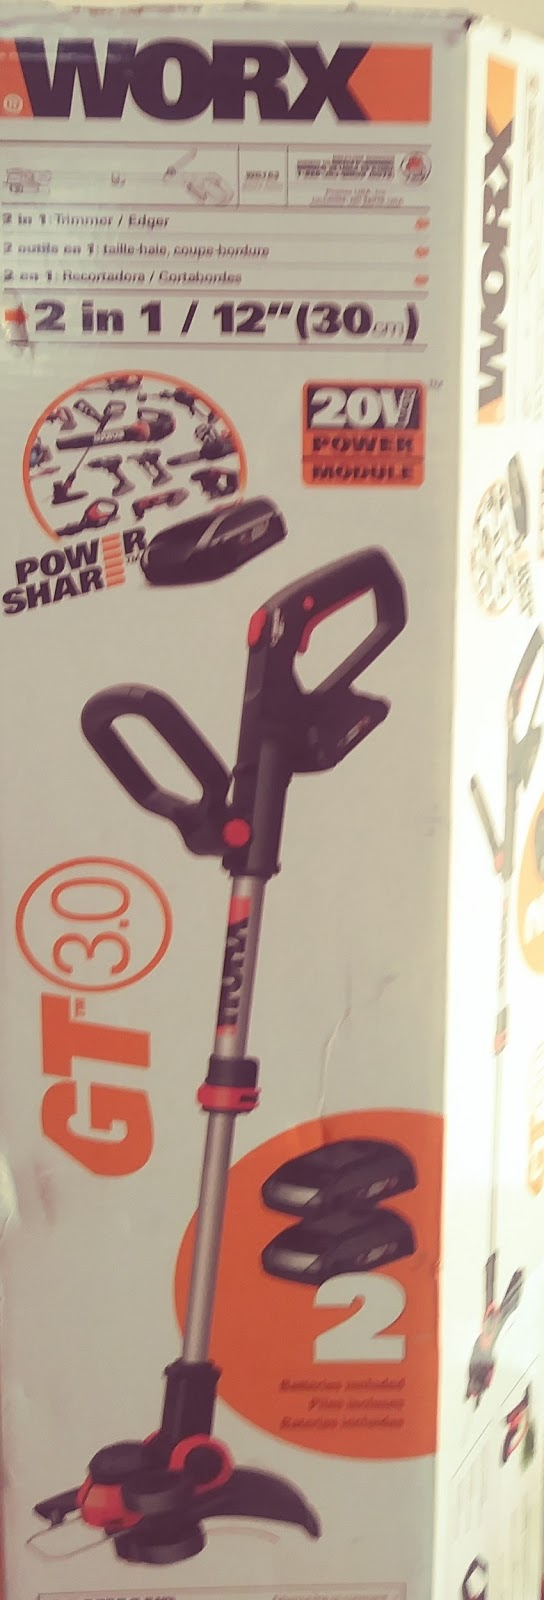 WORX Cordless Trimmer and Edger